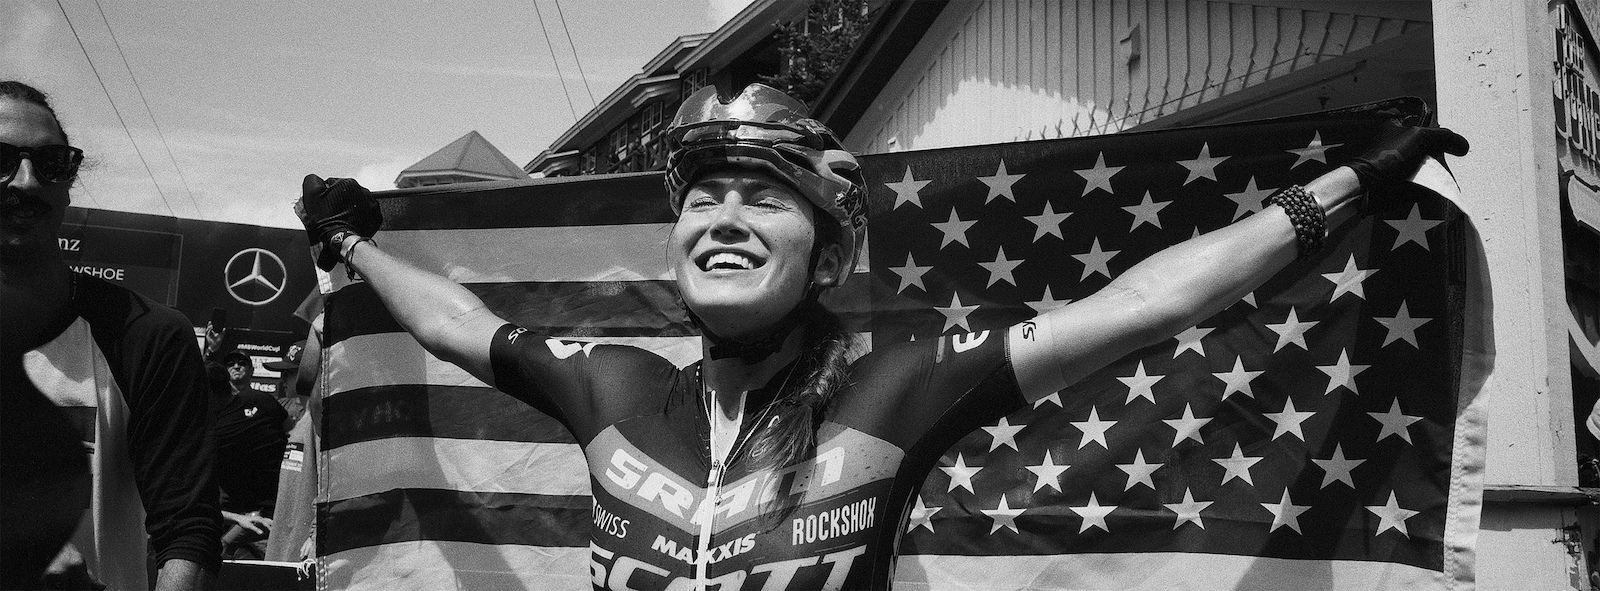 Kate Courtney taking the overall in her home country after a season of ups and downs.